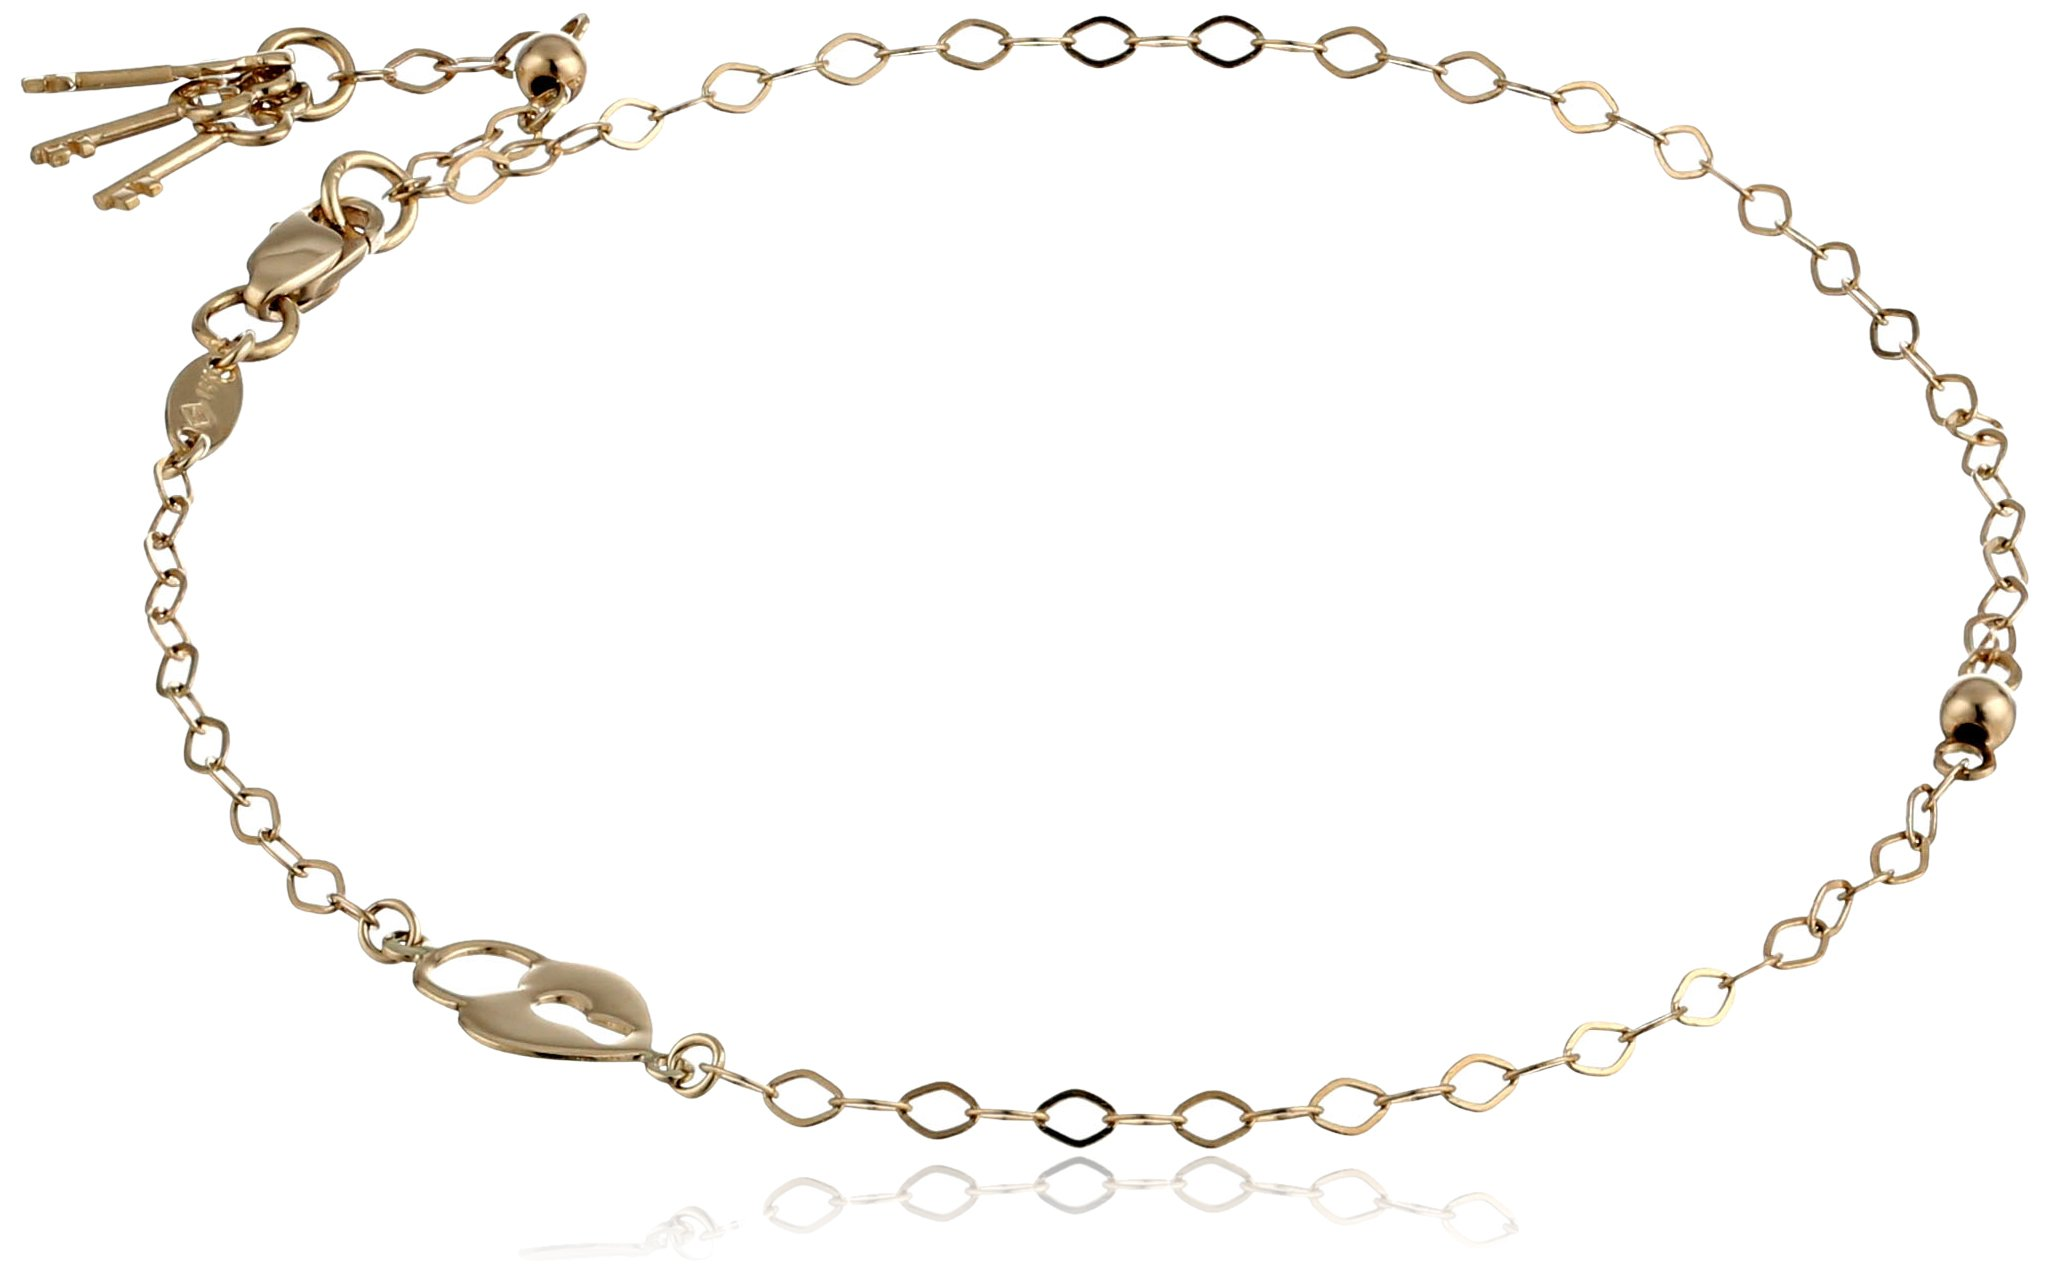 14k Yellow Gold Open Rolo Heart and Key Adjustable Anklet, 9''-10''